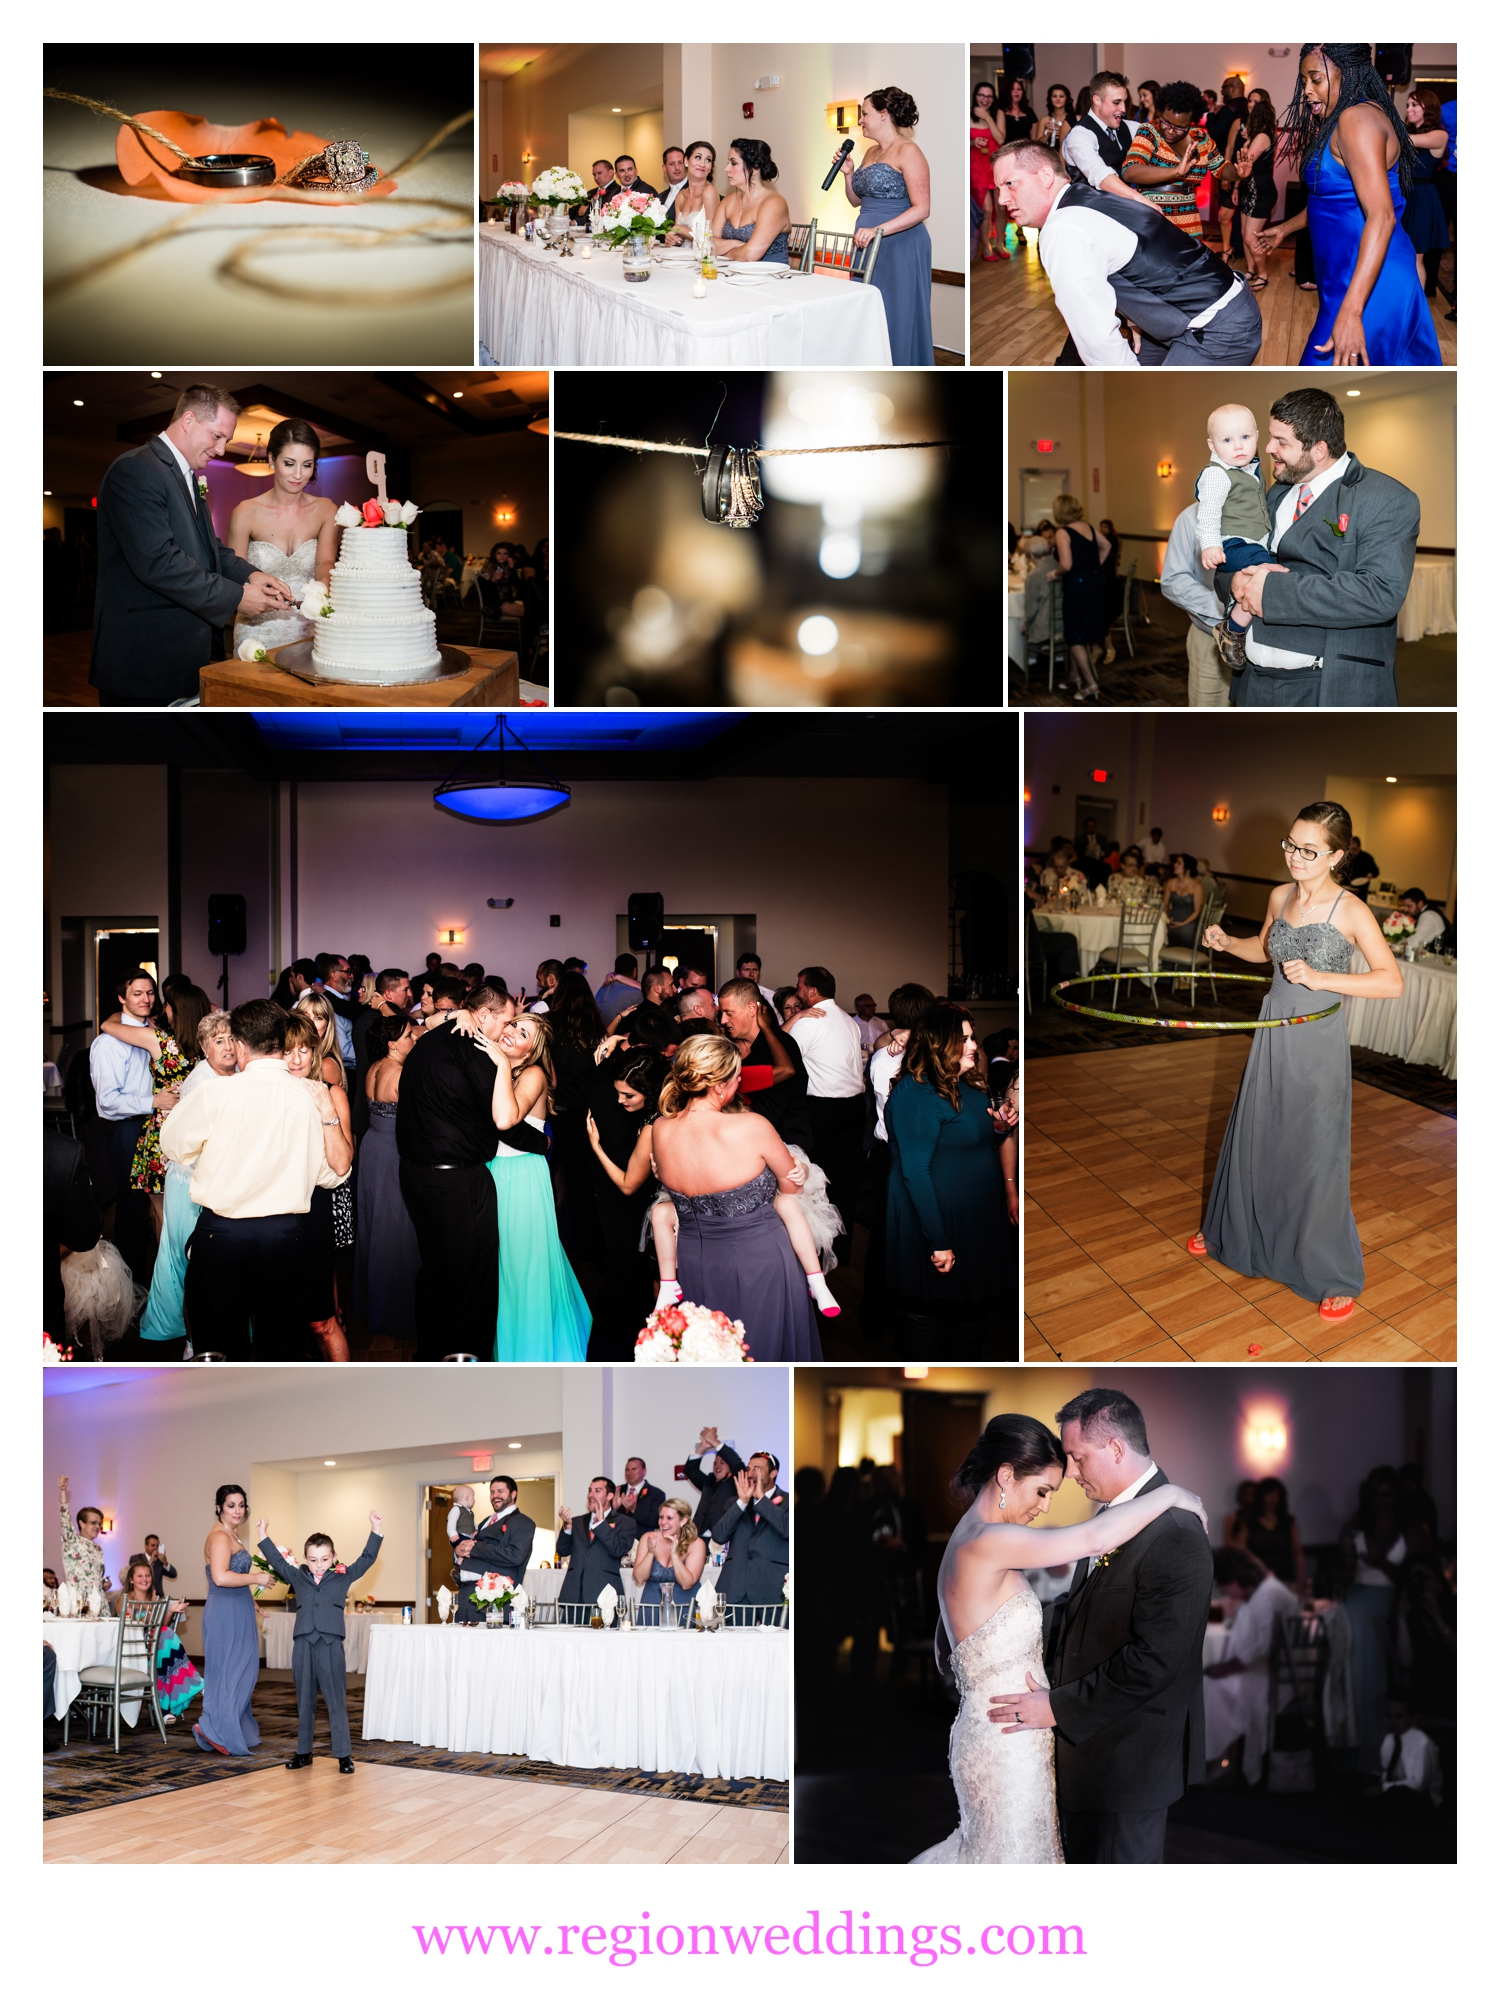 Wedding reception at Signature Banquets in Lowell, Indiana.